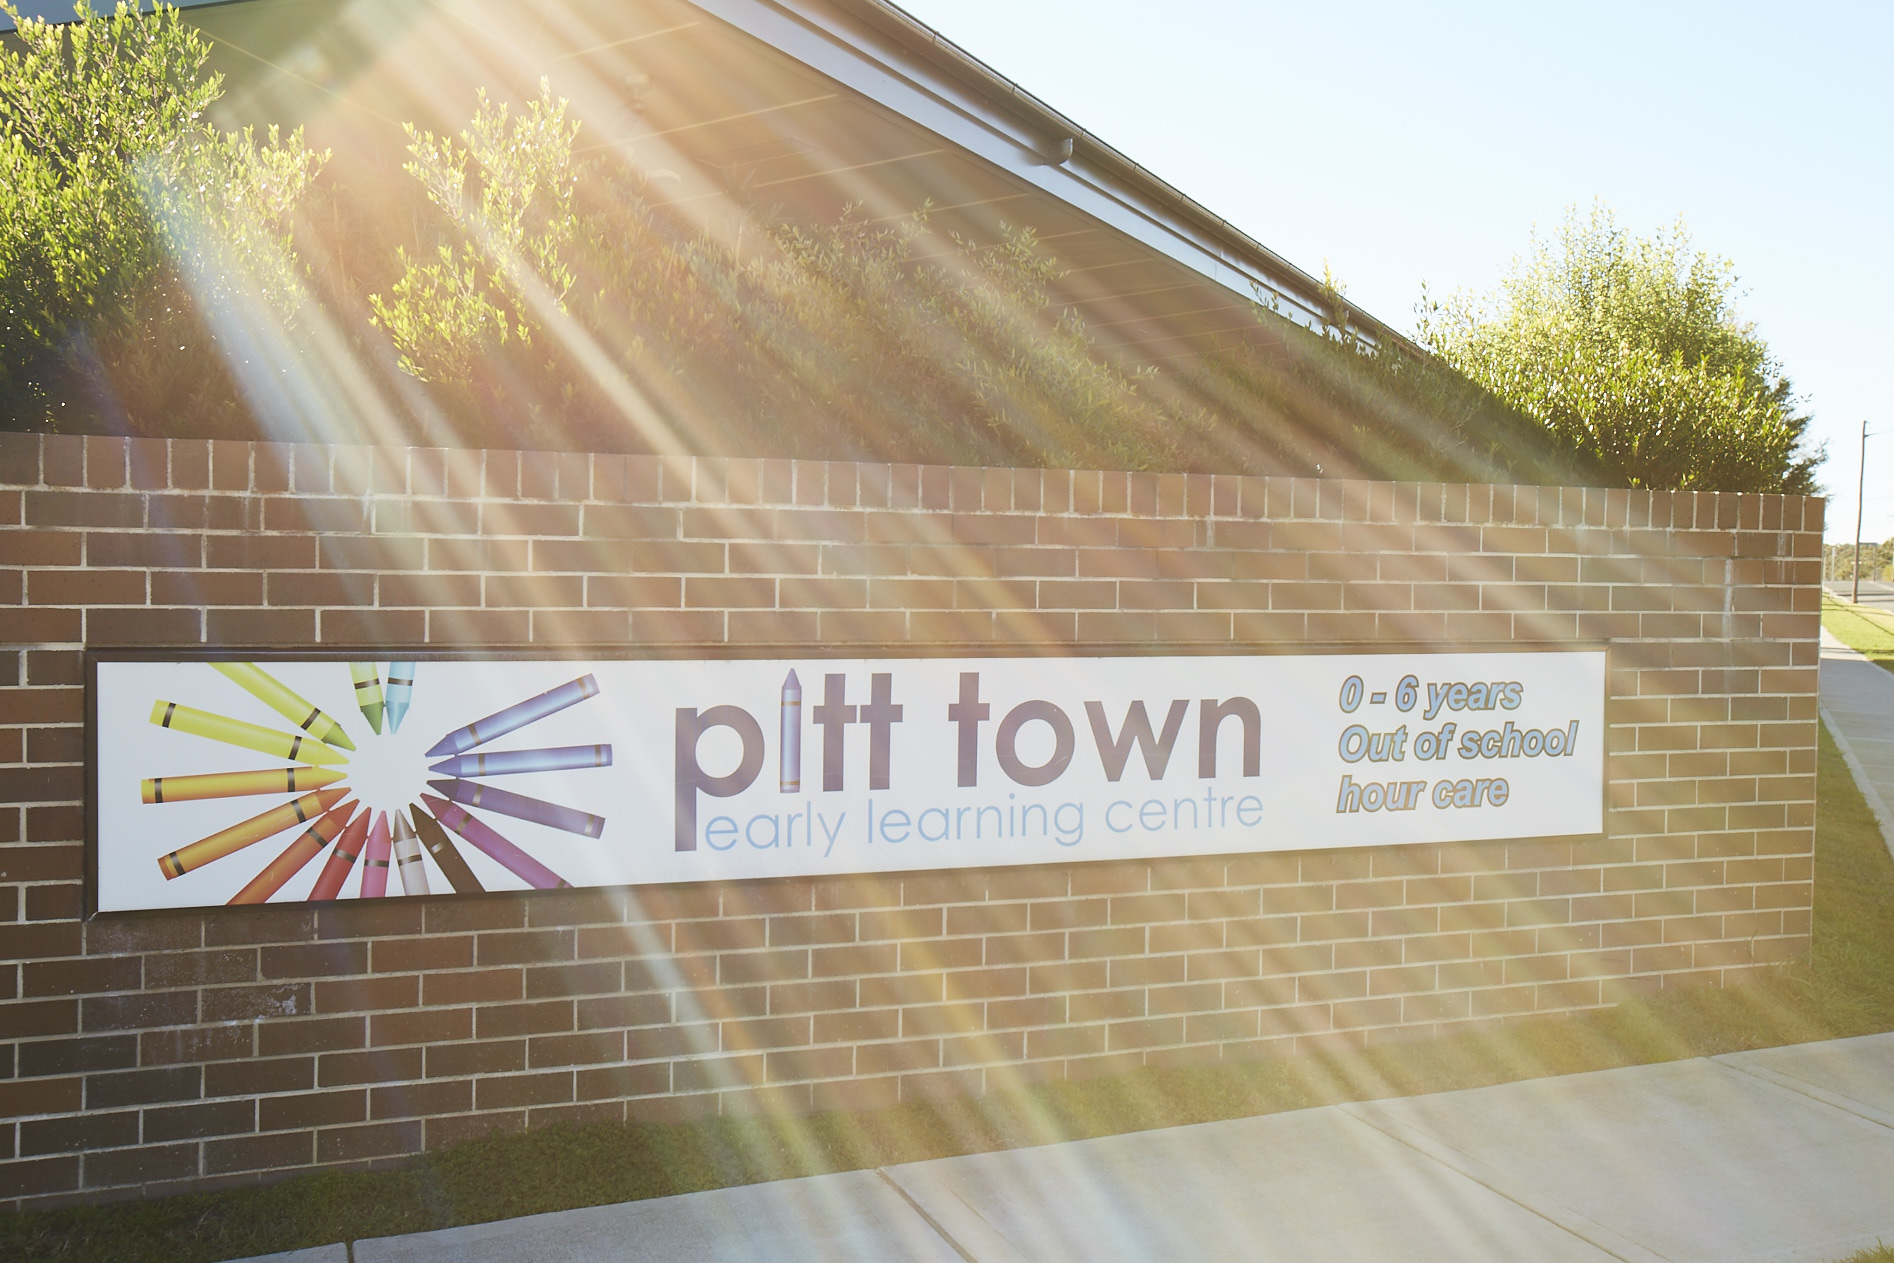 The Pitt Town Early Learning Centre Way